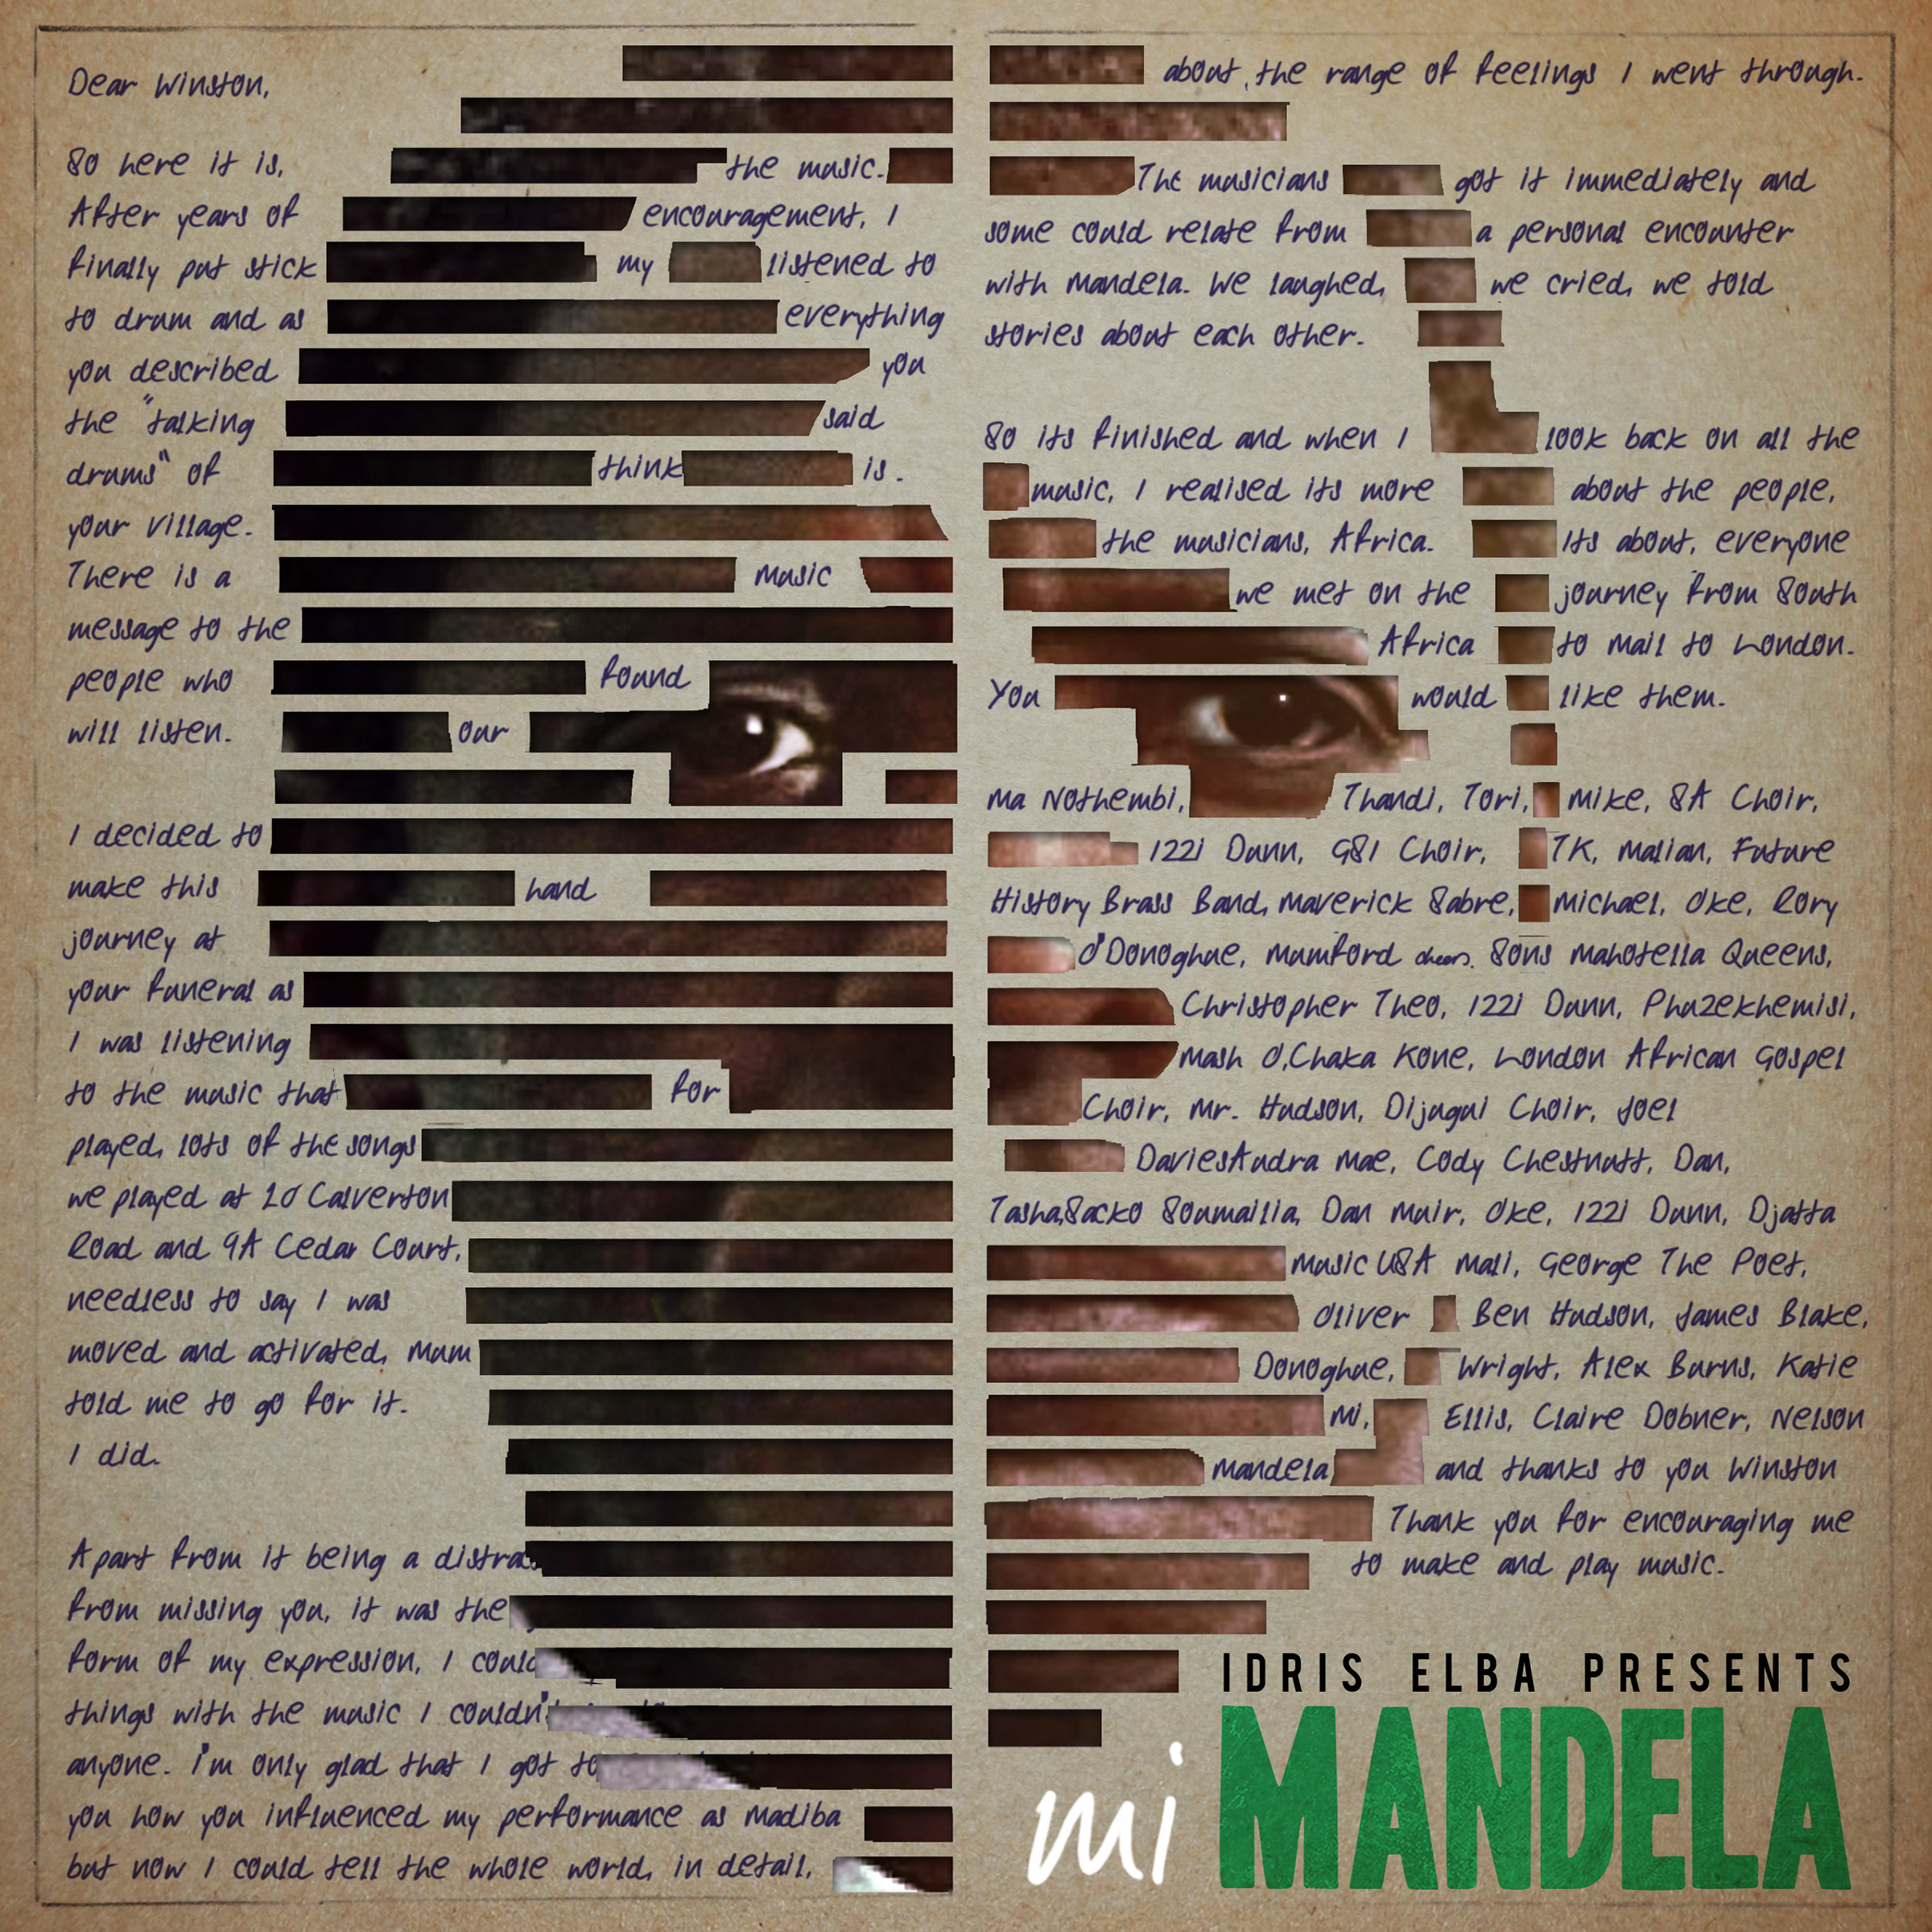 Idris Elba Mi Mandela Artwork